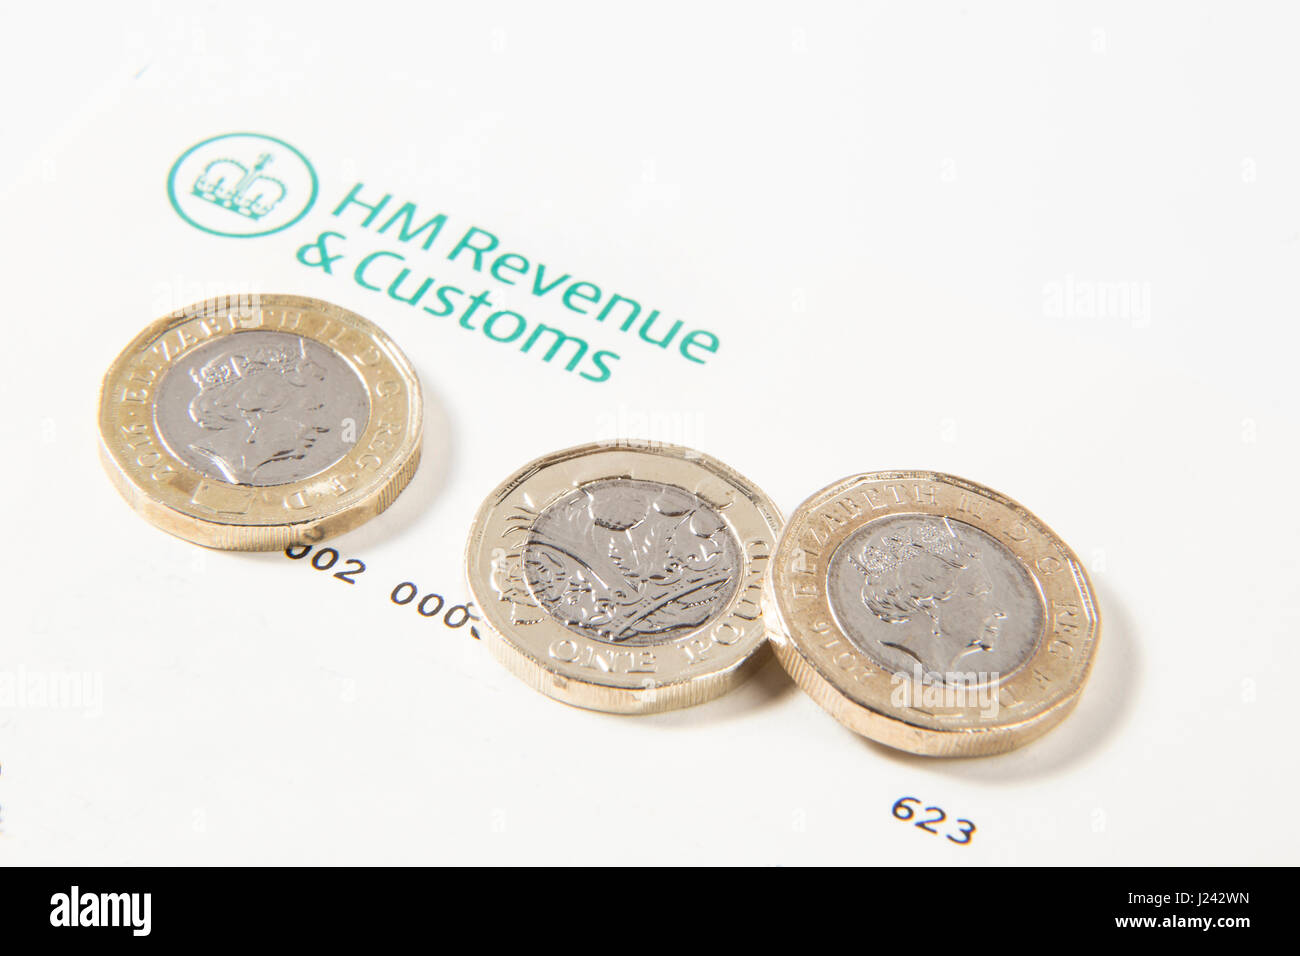 New £1 coins and £2 pound coins on a HM Revenue & Customs letter - Stock Image